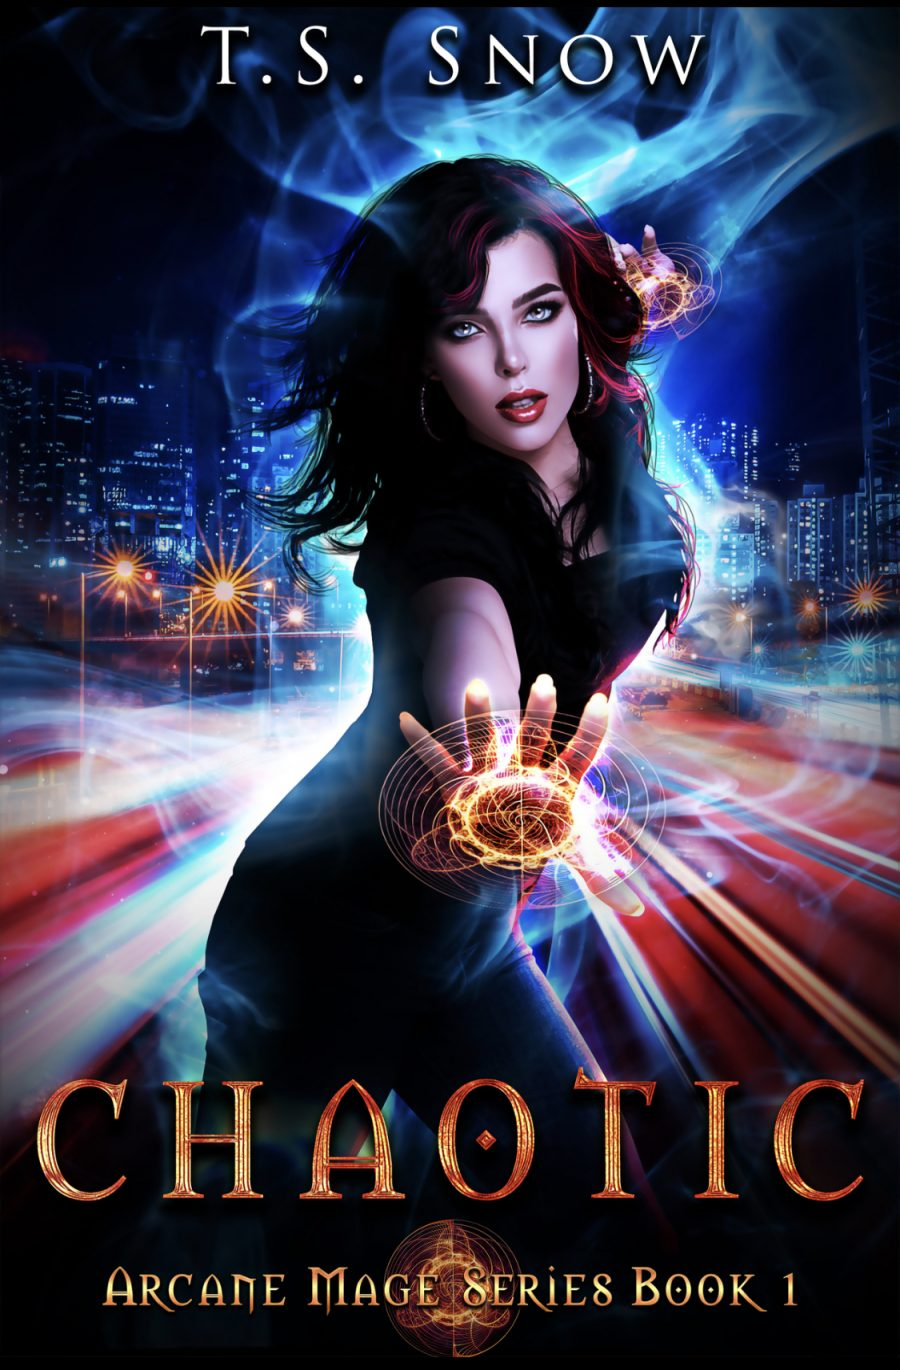 Chaotic (Arcane Mage Series - Book 1) by T.S. Snow - A Book Review #BookReview #PNR #SlowBurn #RH #5Stars #KindleUnlimited #KU